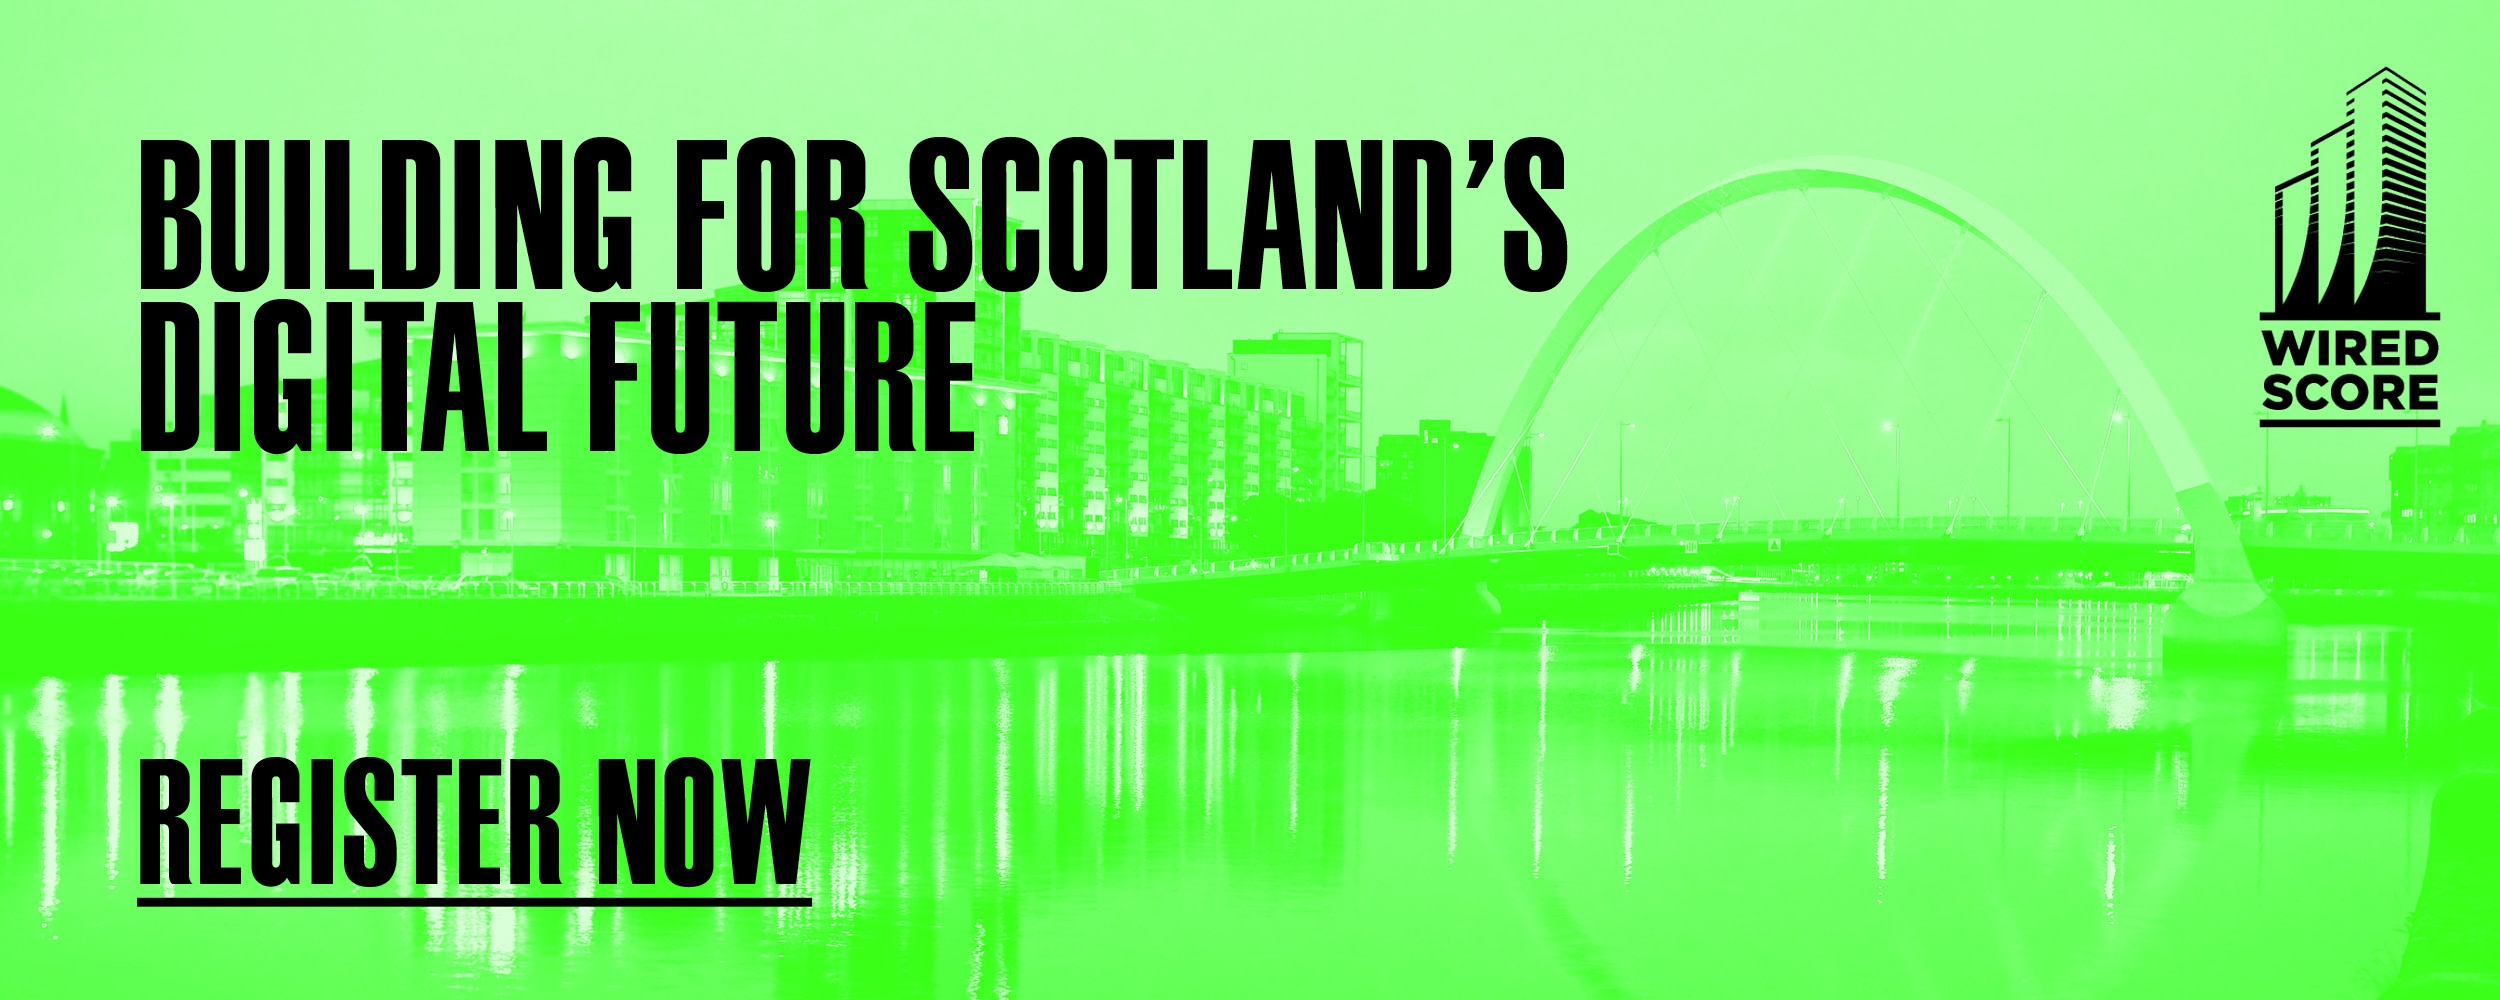 WiredScore Scotland Launch - Building for Scotland's Digital Future